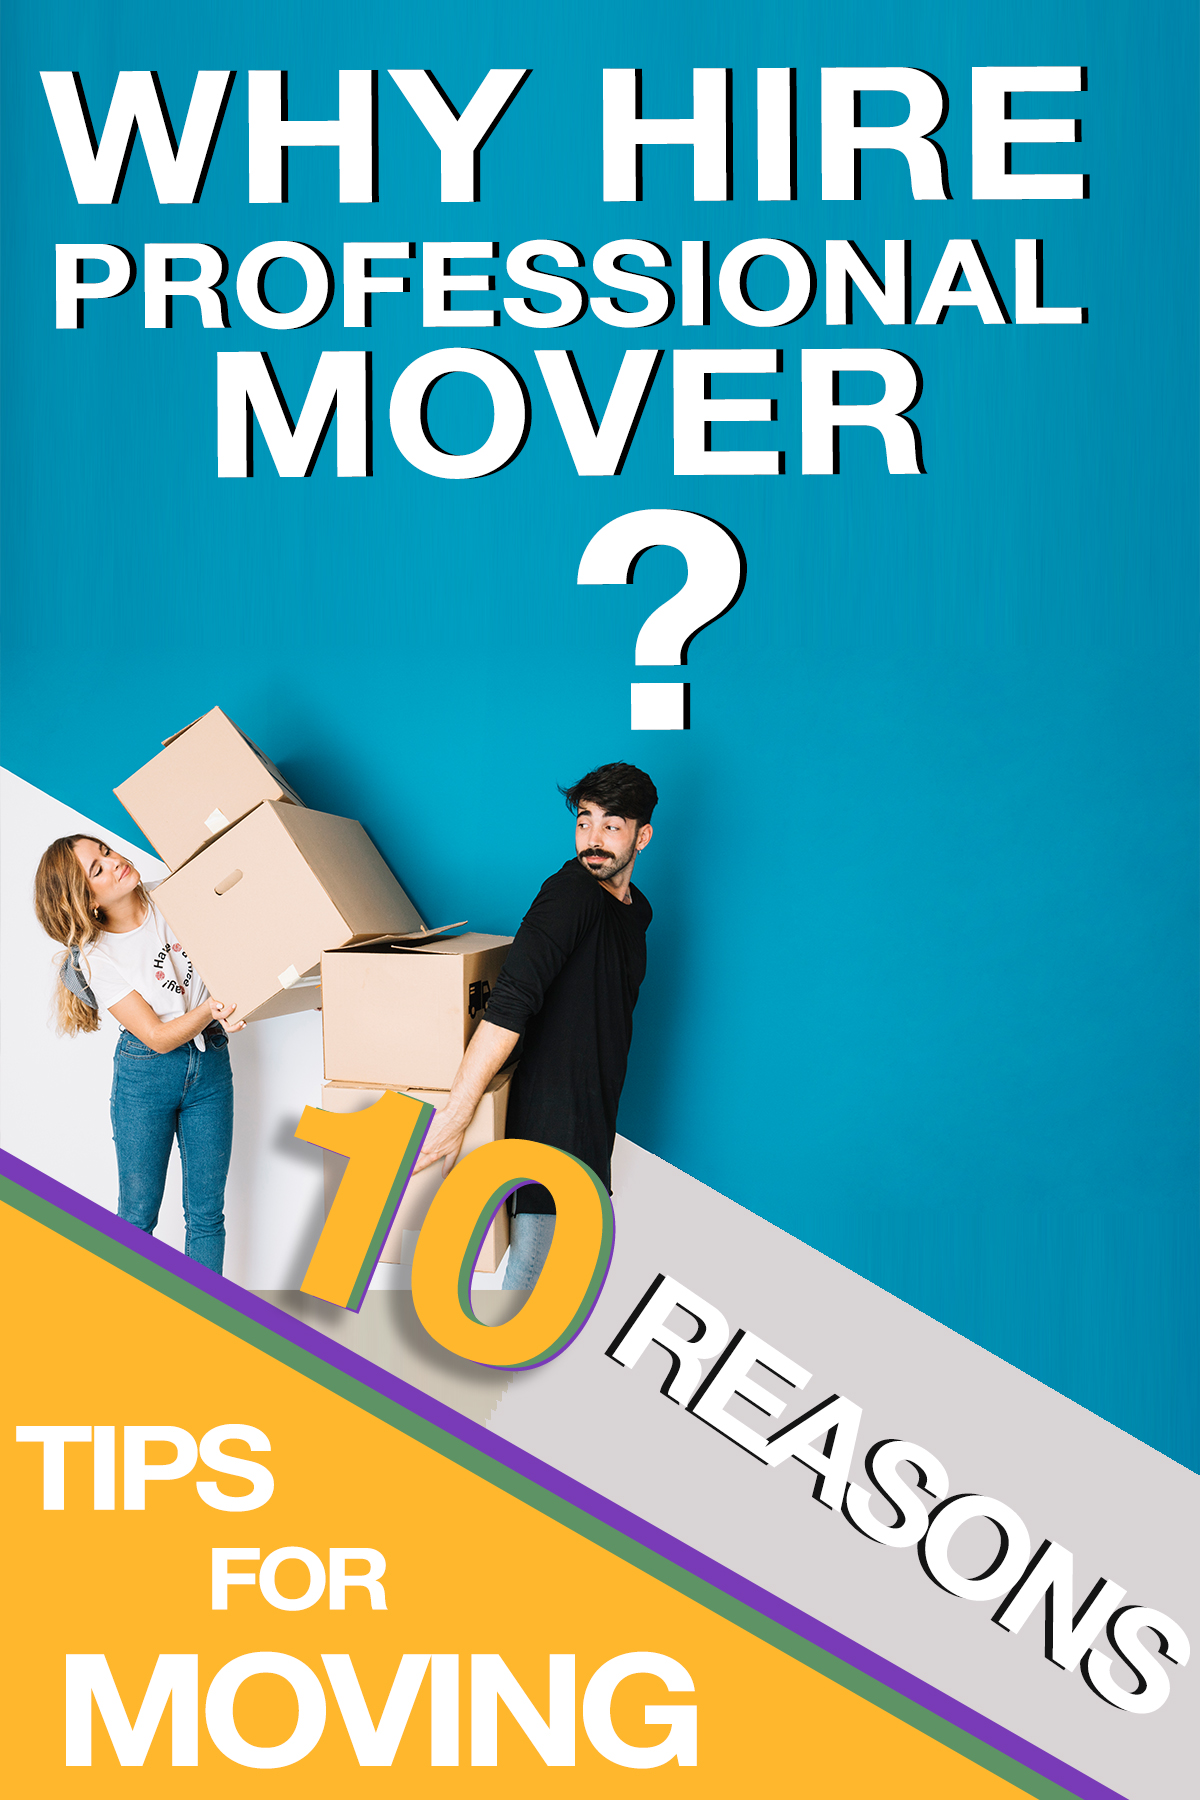 10 reasons to hire a professional mover